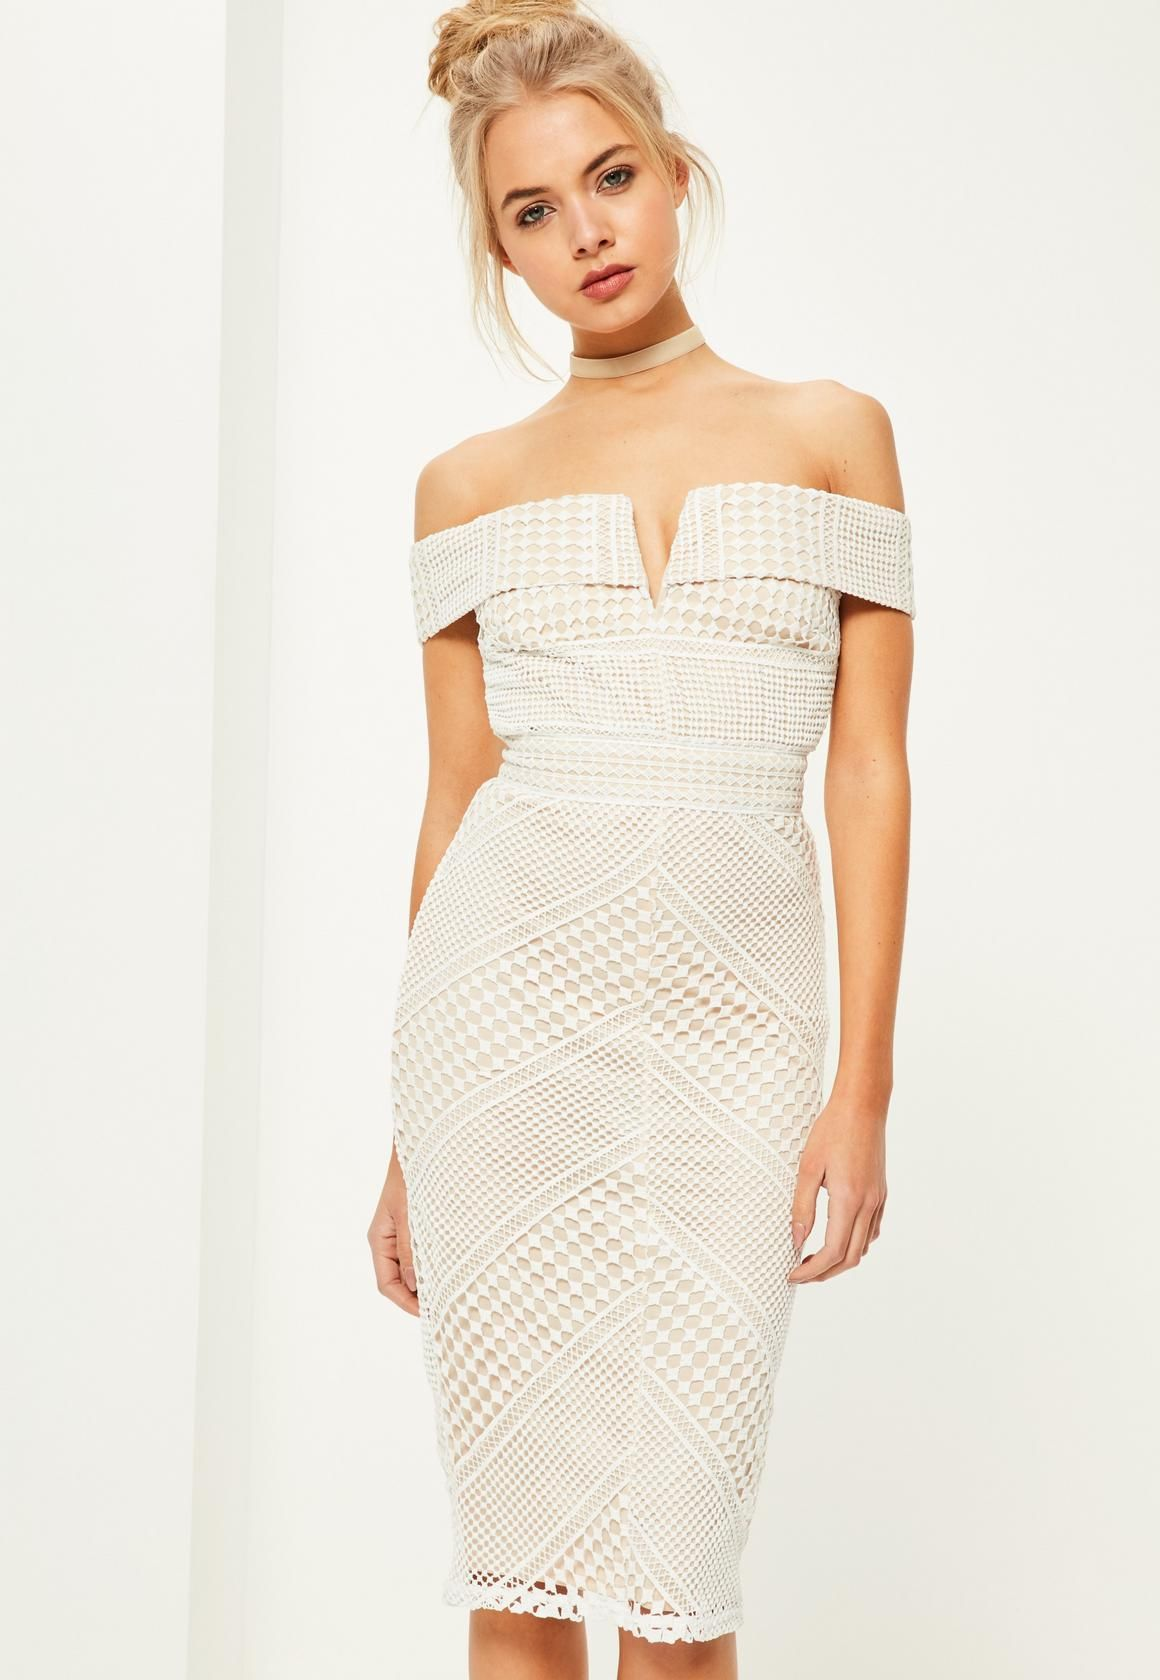 Amor sweetheart bardot midi dress in white and pink